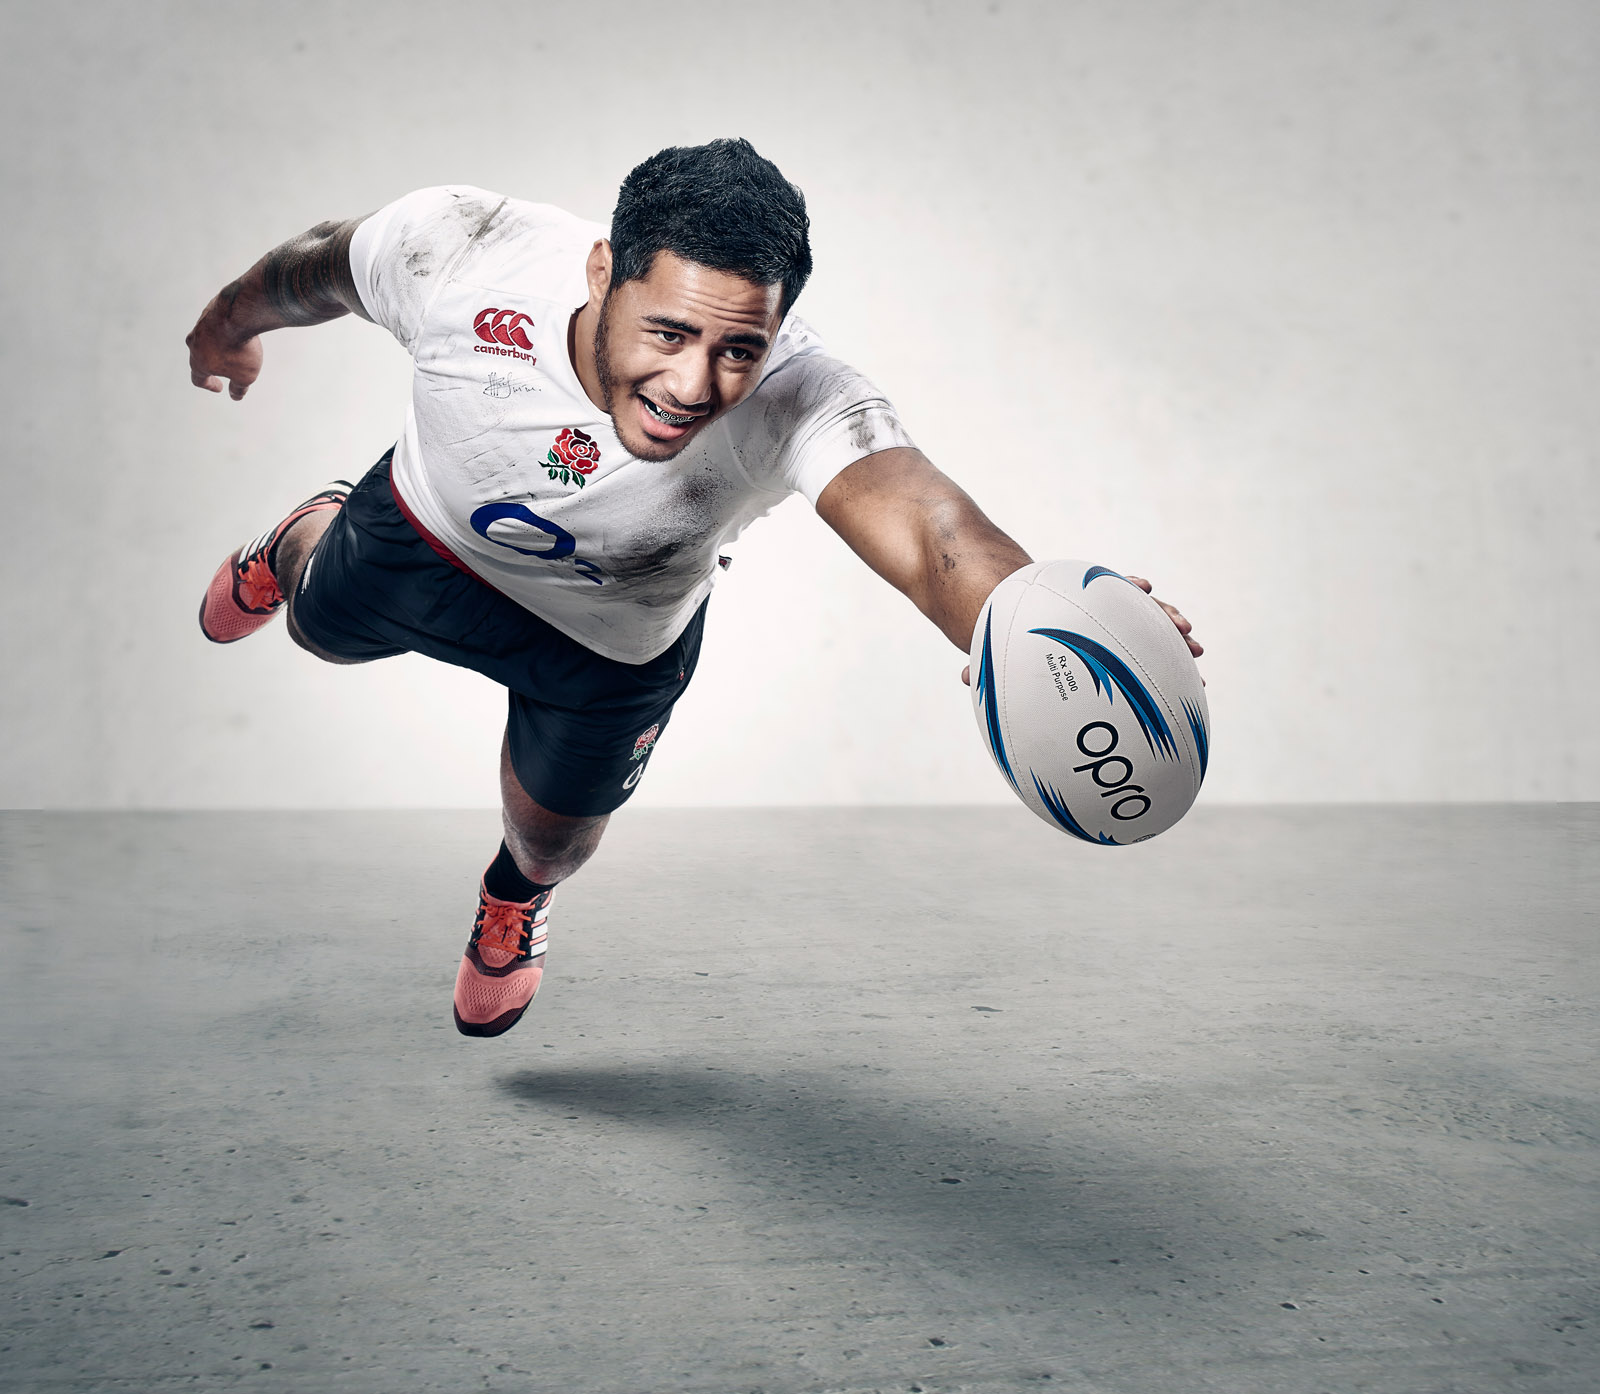 Manu Tuilagi diving with the ball